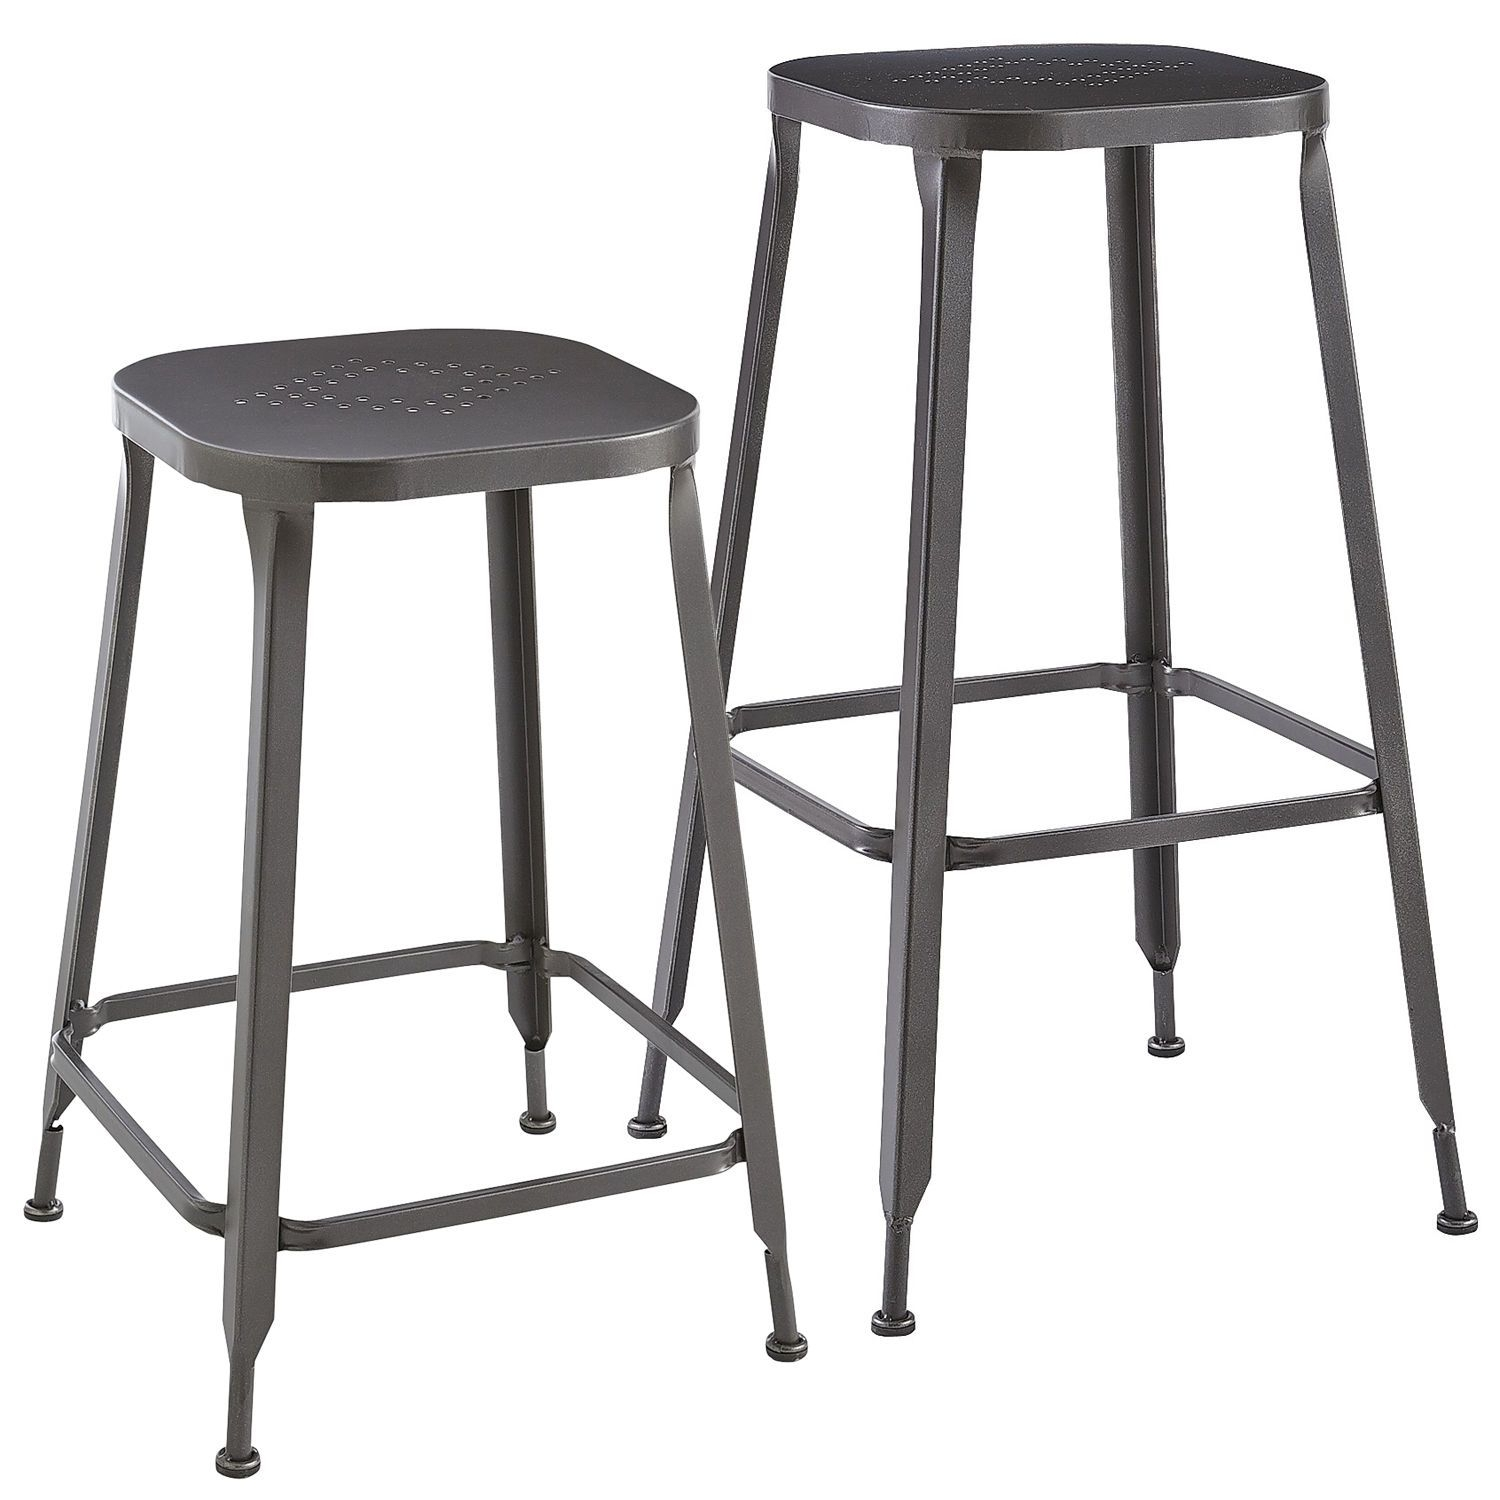 Image of: Furniture Imports Backless Bar Stool Ideas On Foter